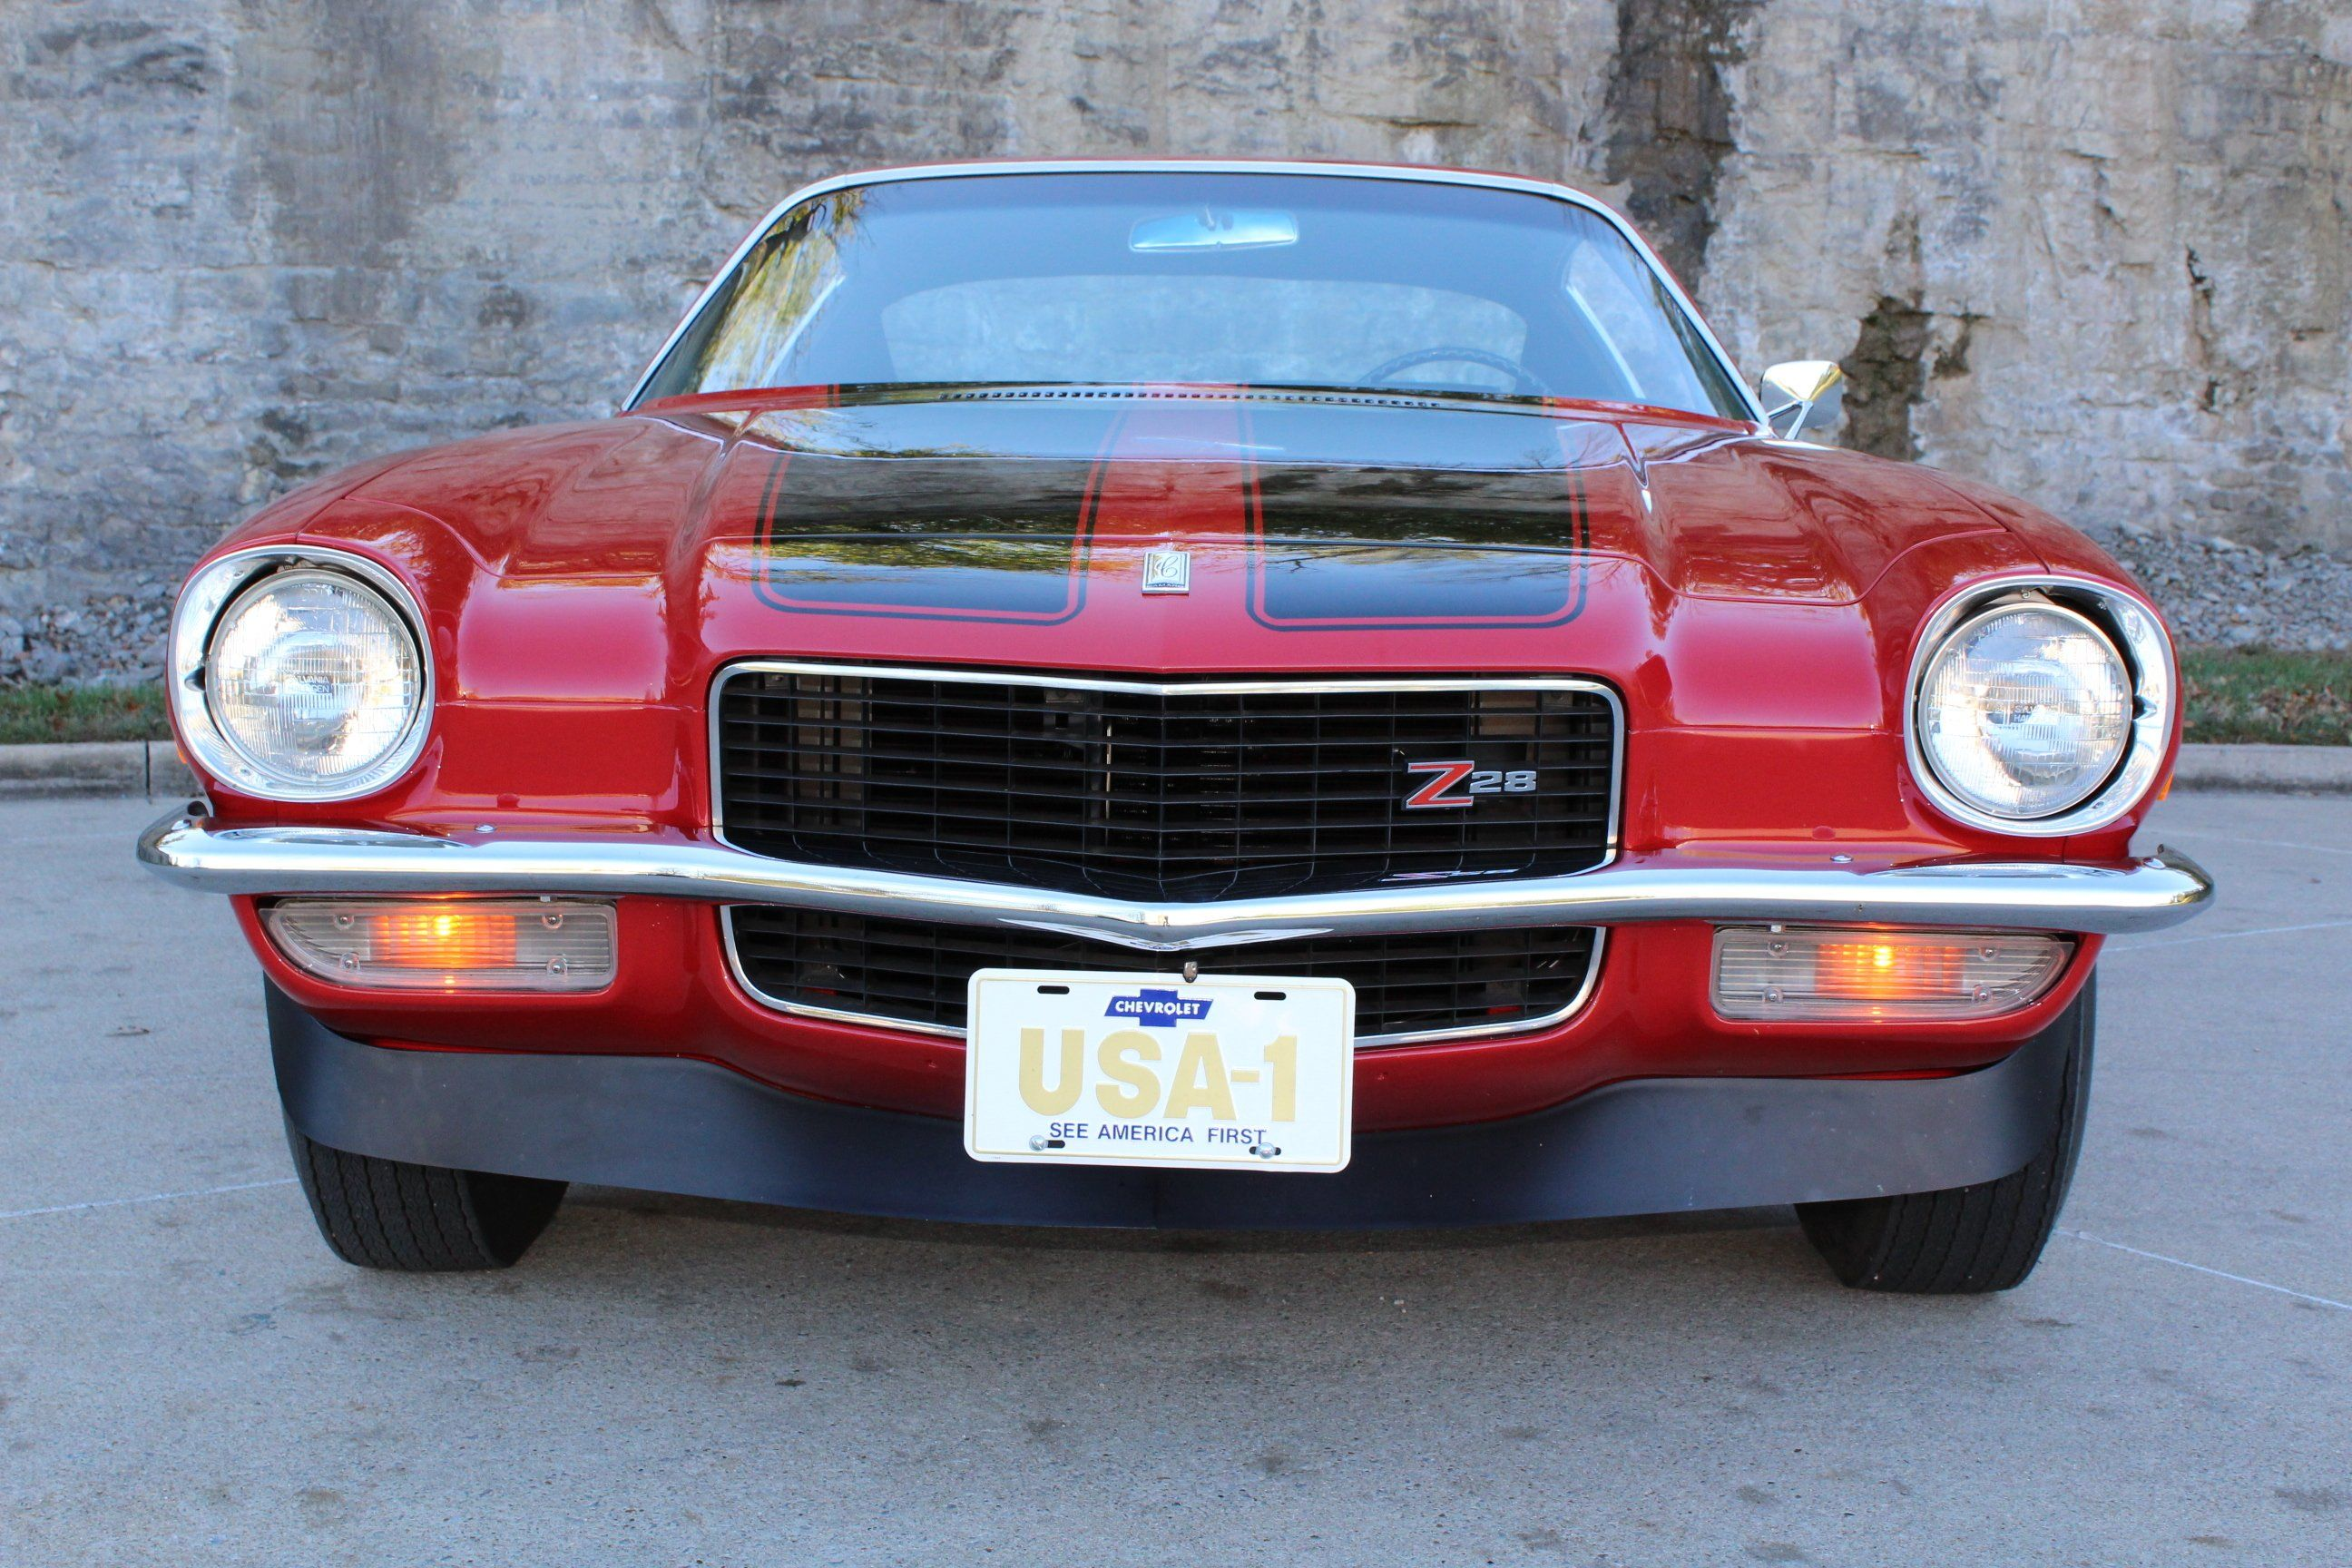 1970 Chevrolet Camaro GAA Classic Cars (With images